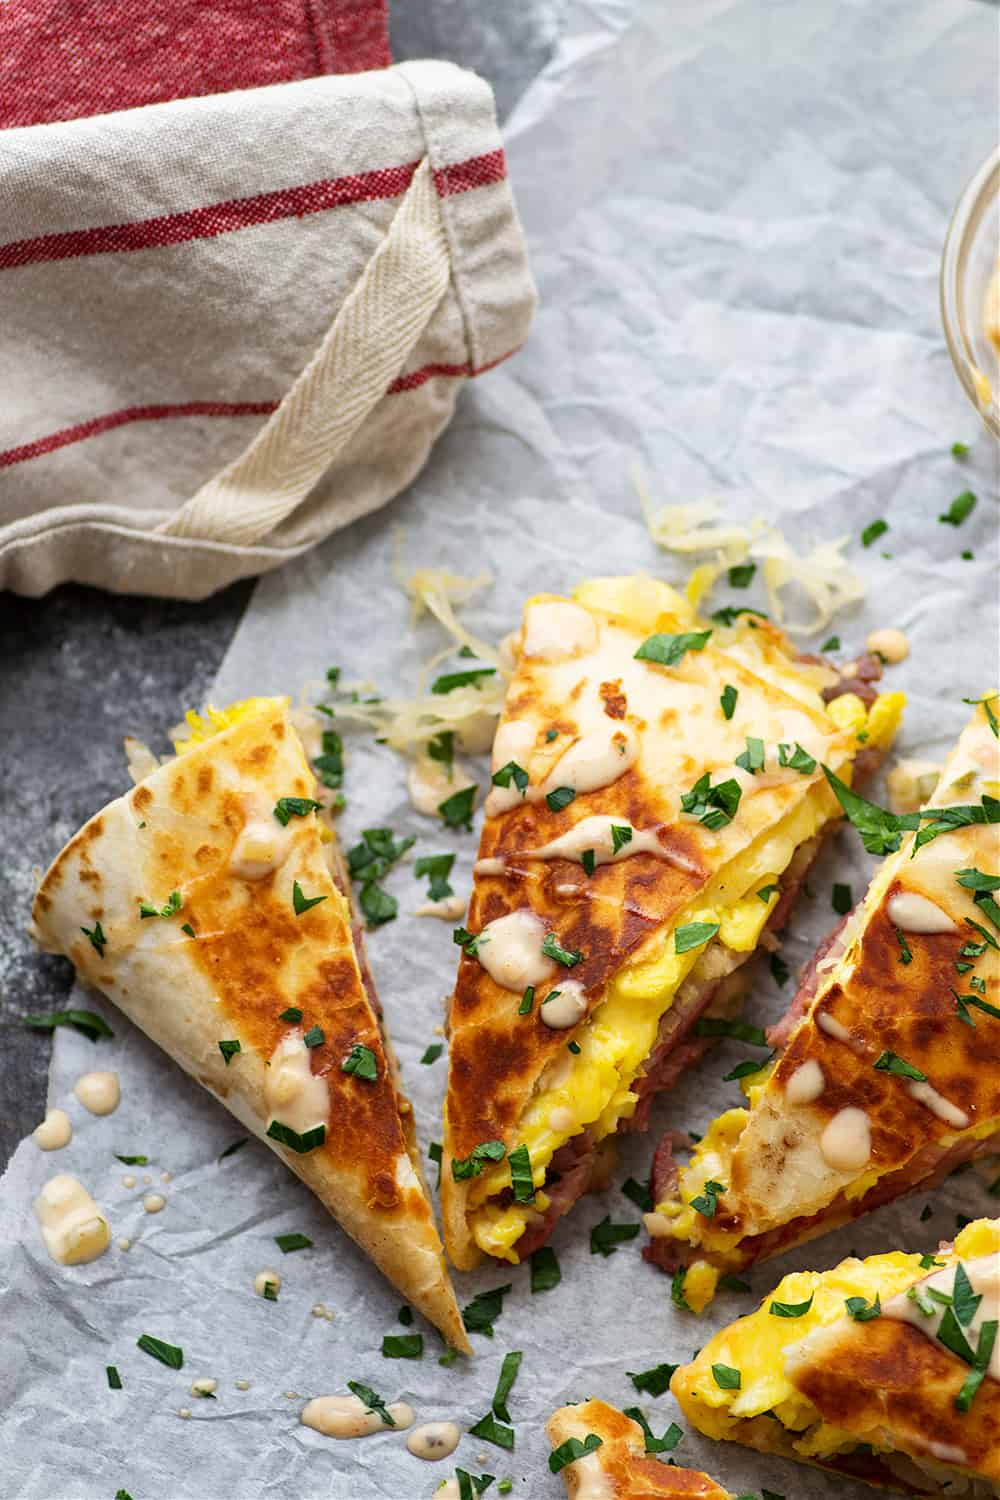 Loaded with all the classic Reuben sandwich fixins' and soft scrambled eggs, these breakfast corned beef quesadillas are fast to whip up and the perfect use for leftover corned beef!